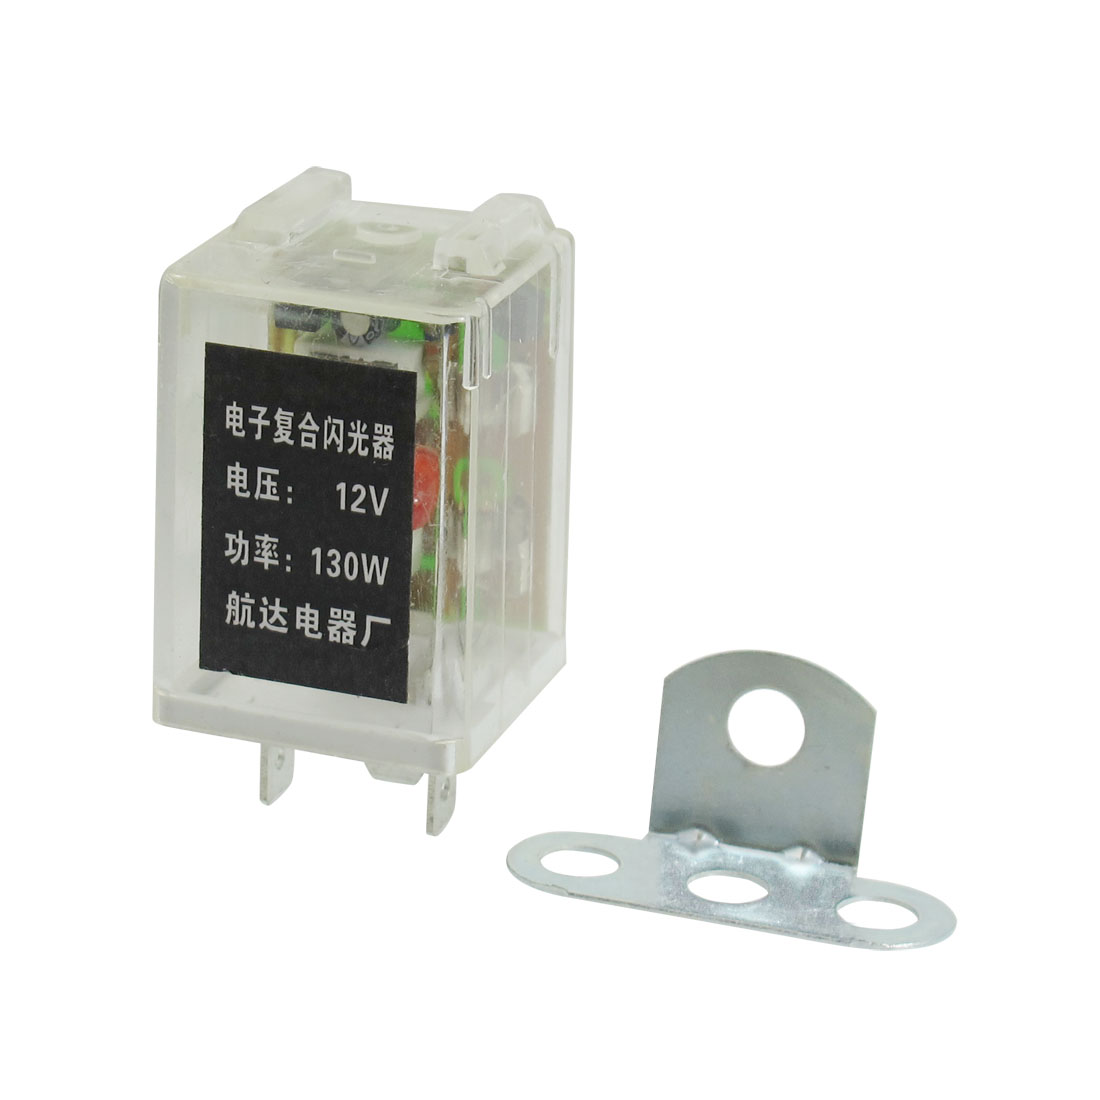 DC 12V 130W 3 Pin LED Light Fast Blink Flash Auto Car Flasher Relay